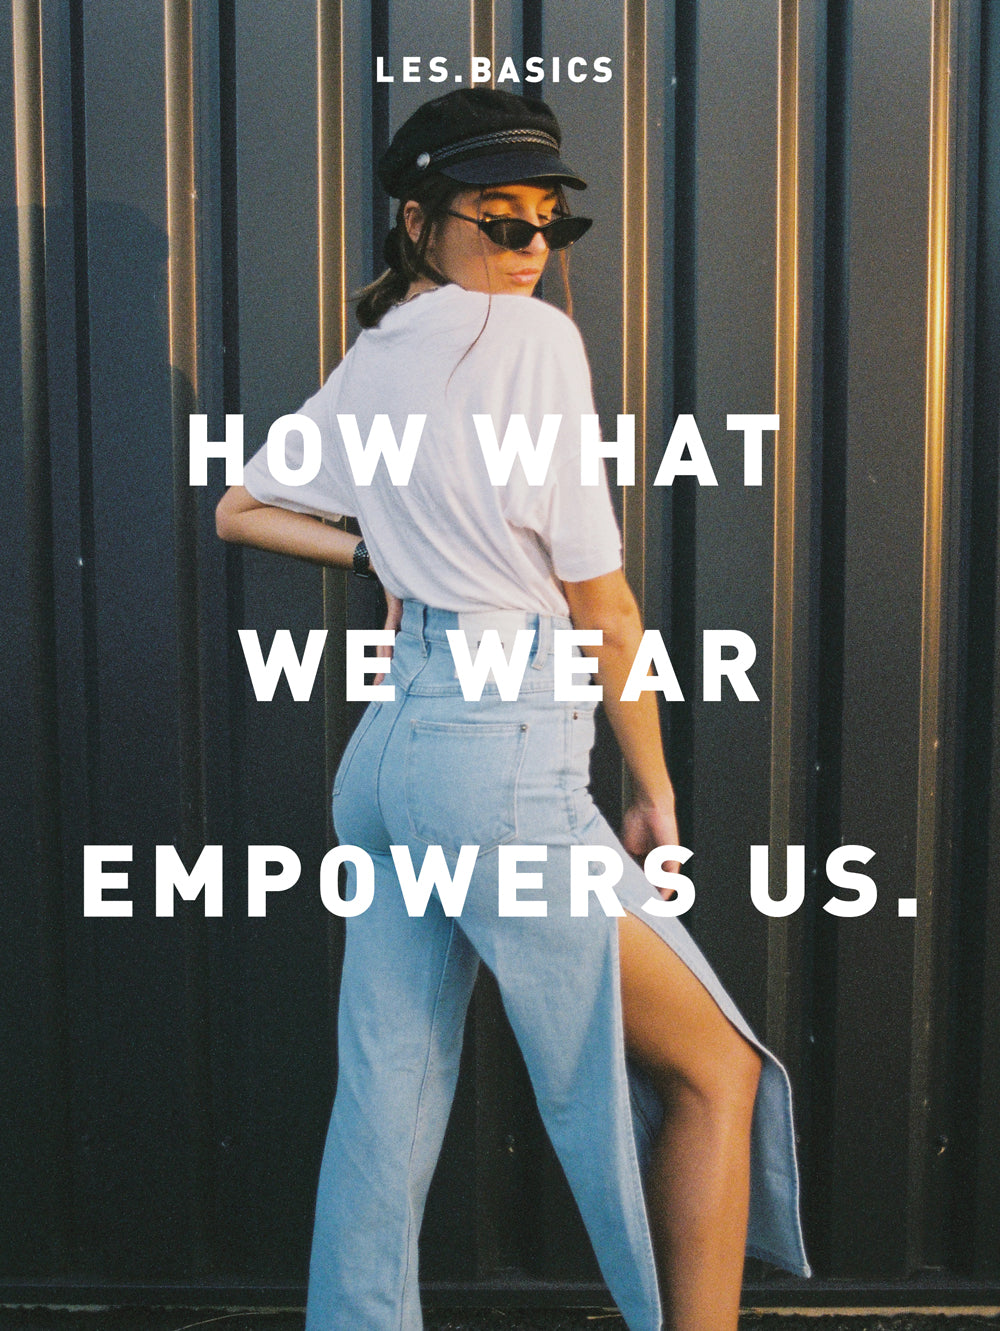 How what we wear empowers us